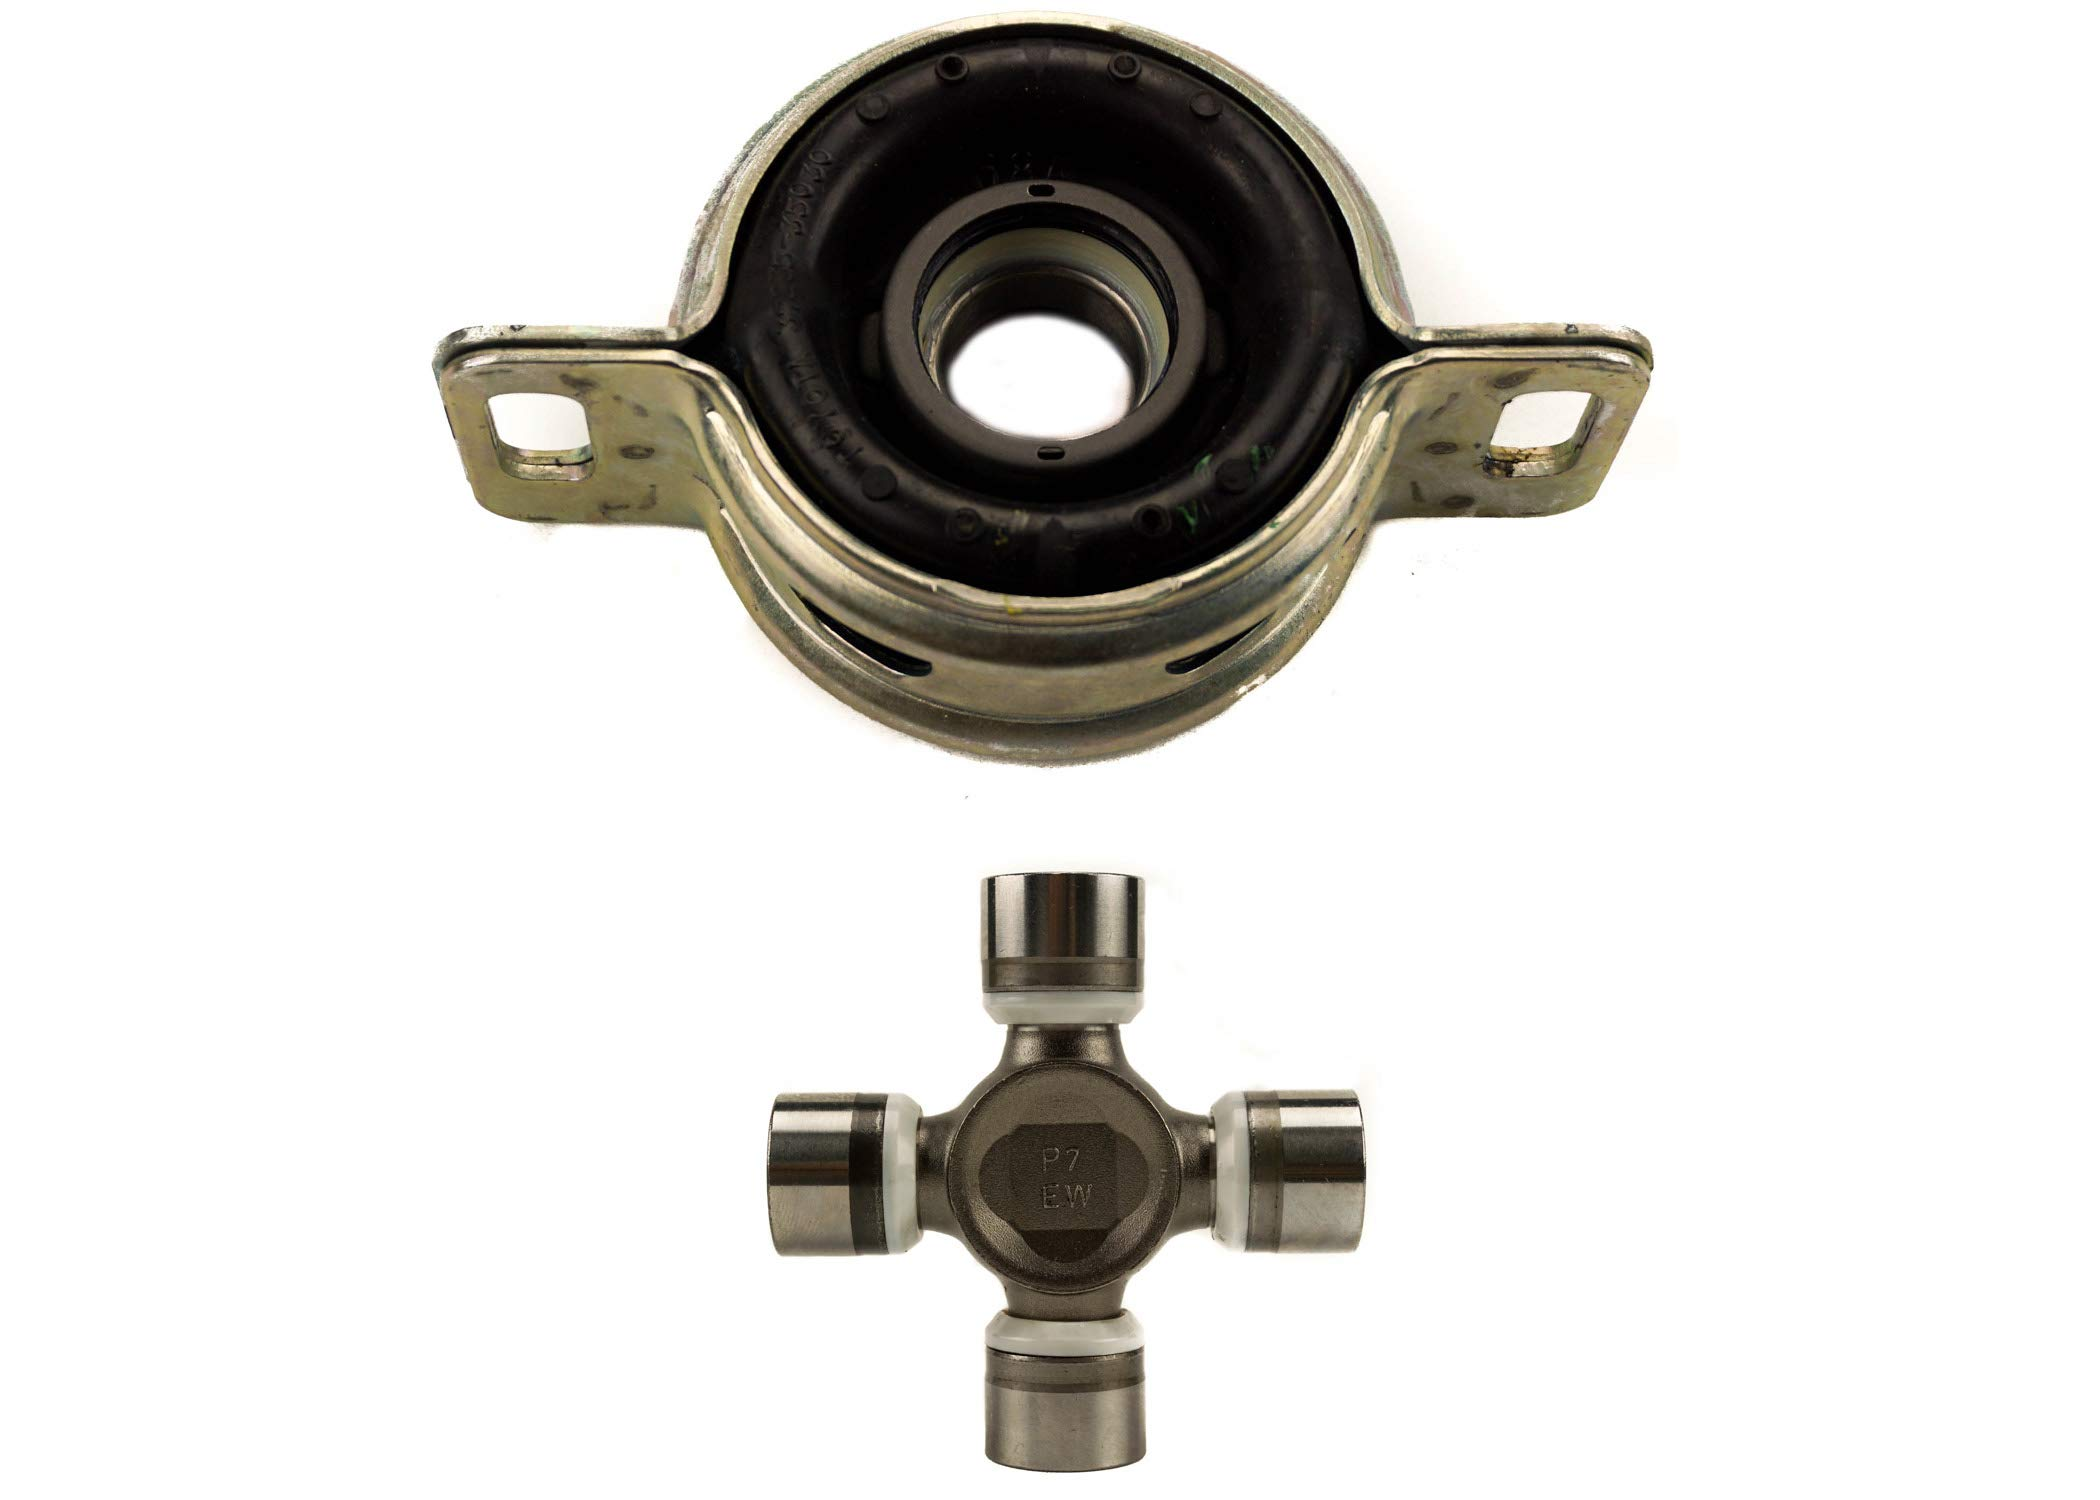 OEM Tacoma Driveshaft Center Support Kit: 37230-0K030 Center Bearing, 04371-0430 U-Joint